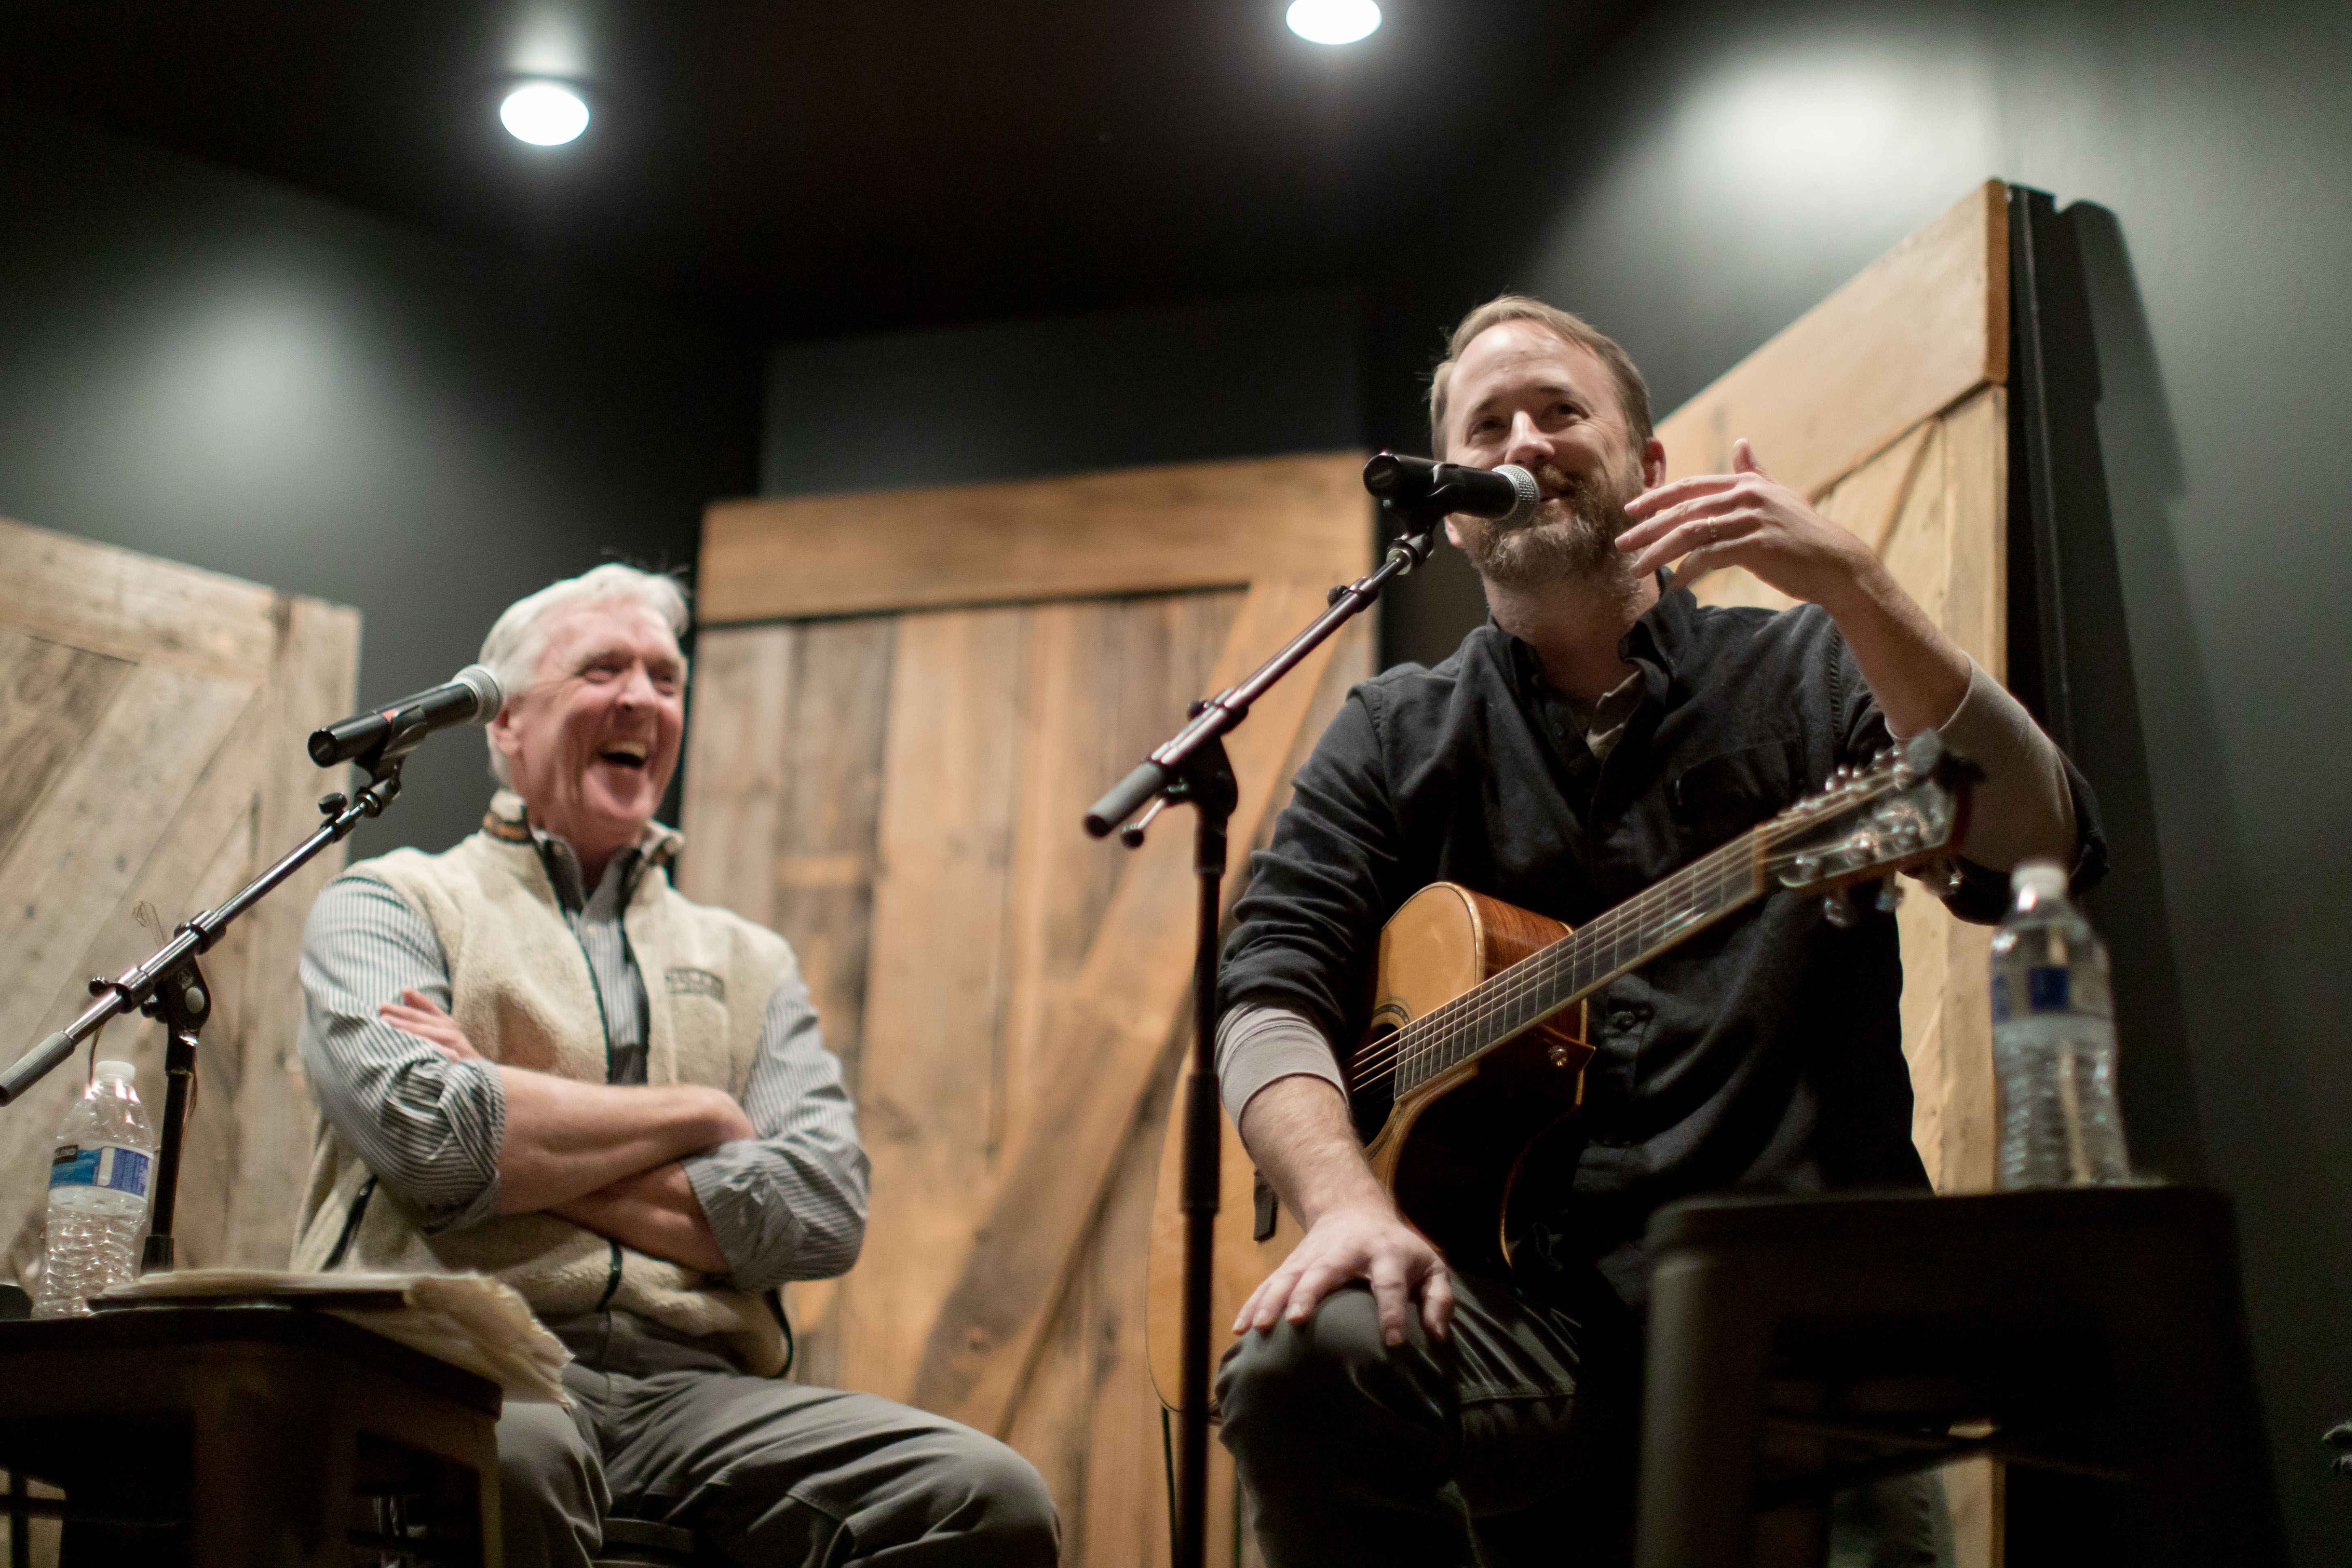 Singer / Songwriter Retreat and Concert with Allen Levi and Andy Gullahorn